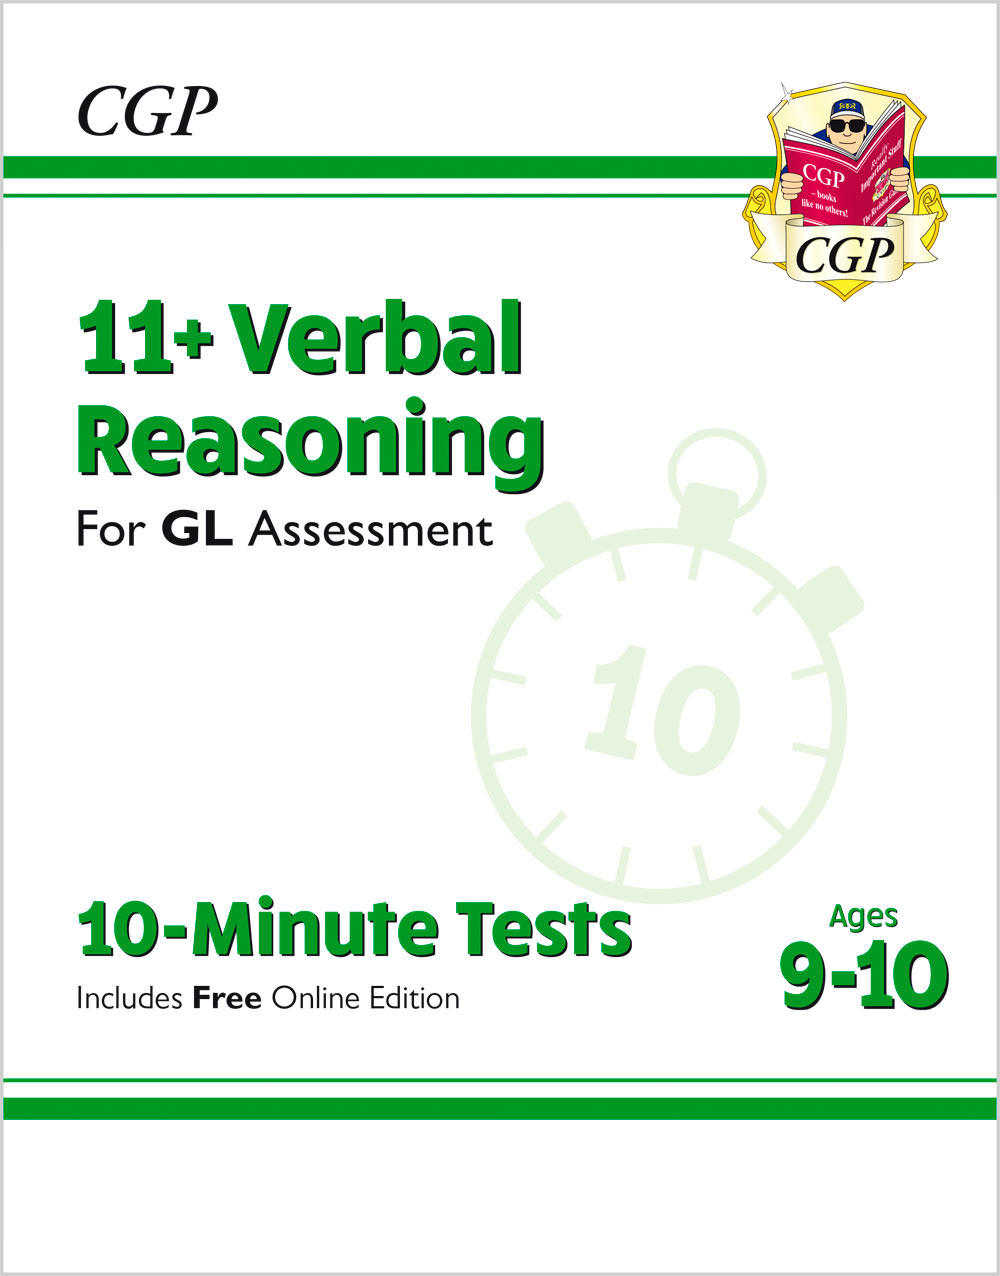 Z2191B7900 - tbc - 10-Minute Tests for 11+ Verbal Reasoning Ages 9-10 - GL